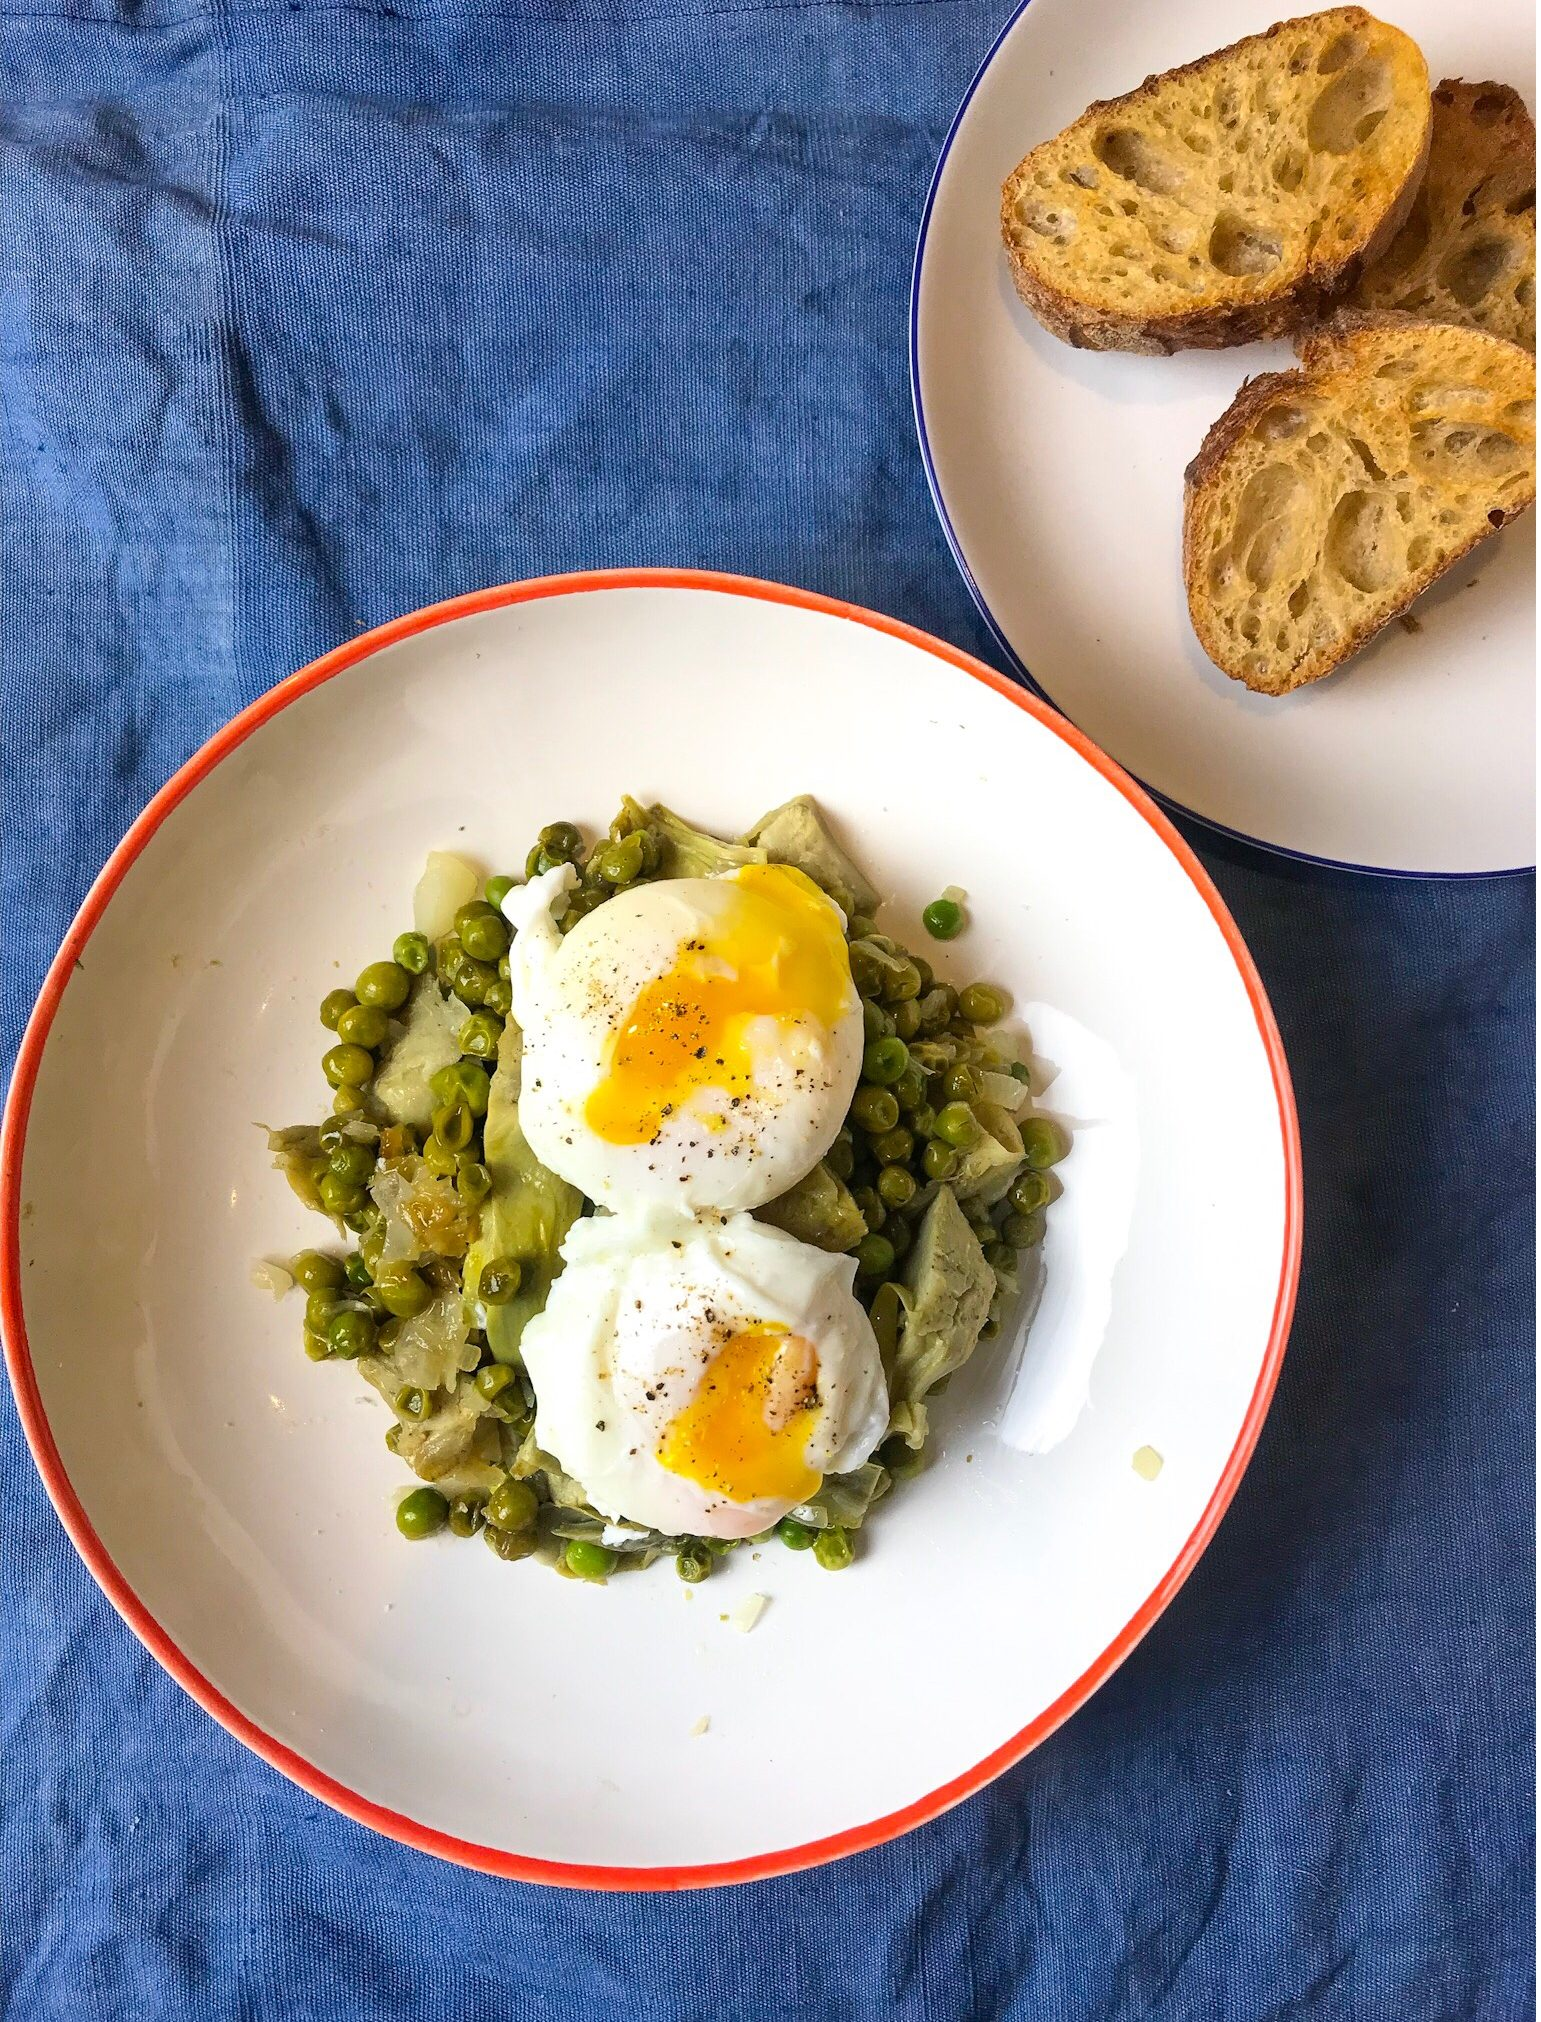 Poached eggs with artichoke & peas